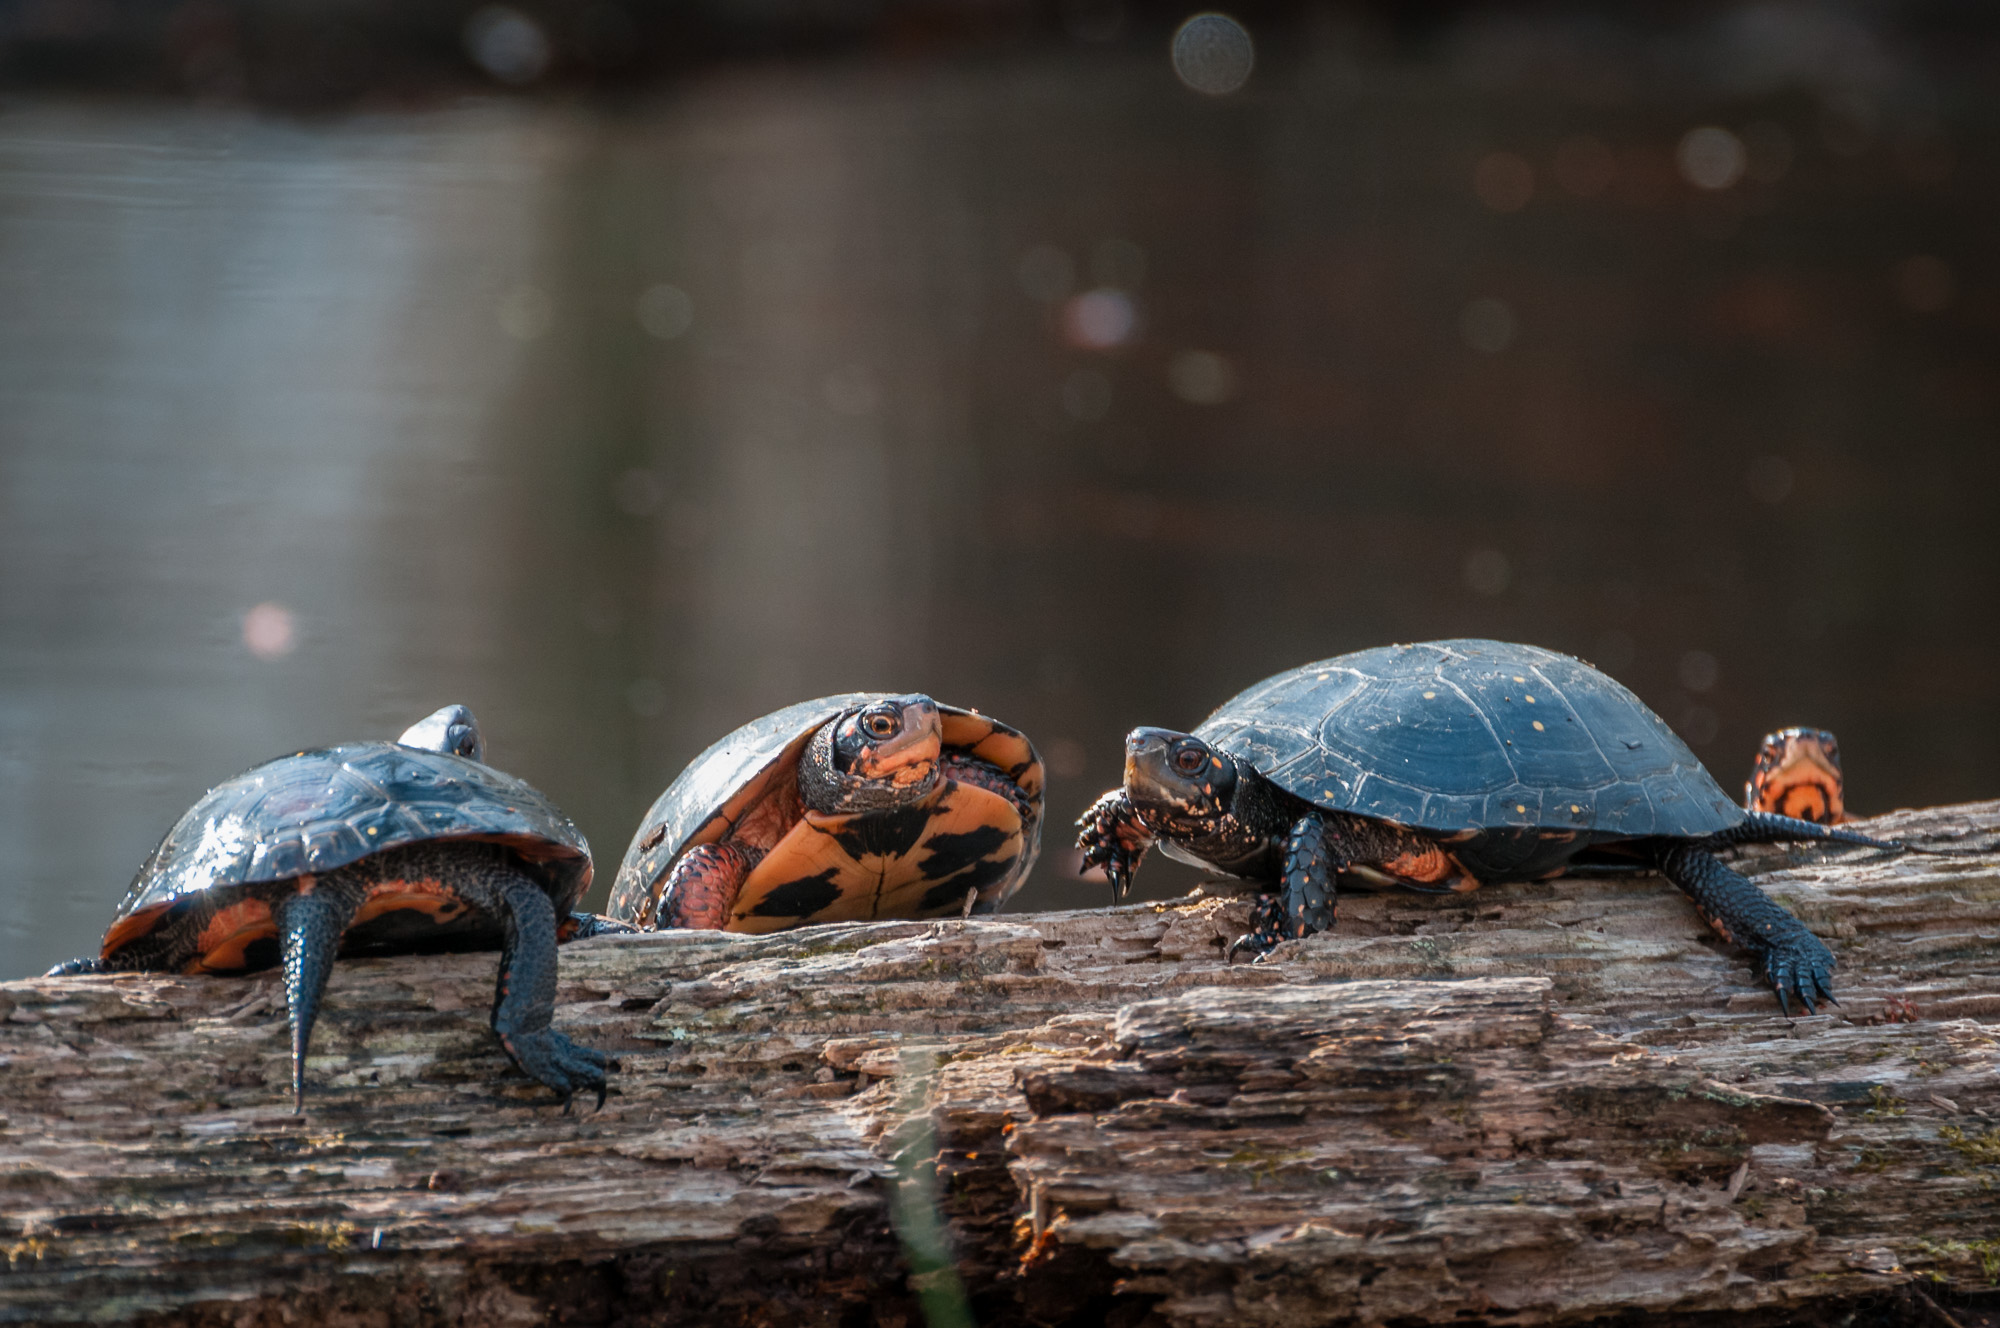 Four Spotted Turtles on a log in wetlands